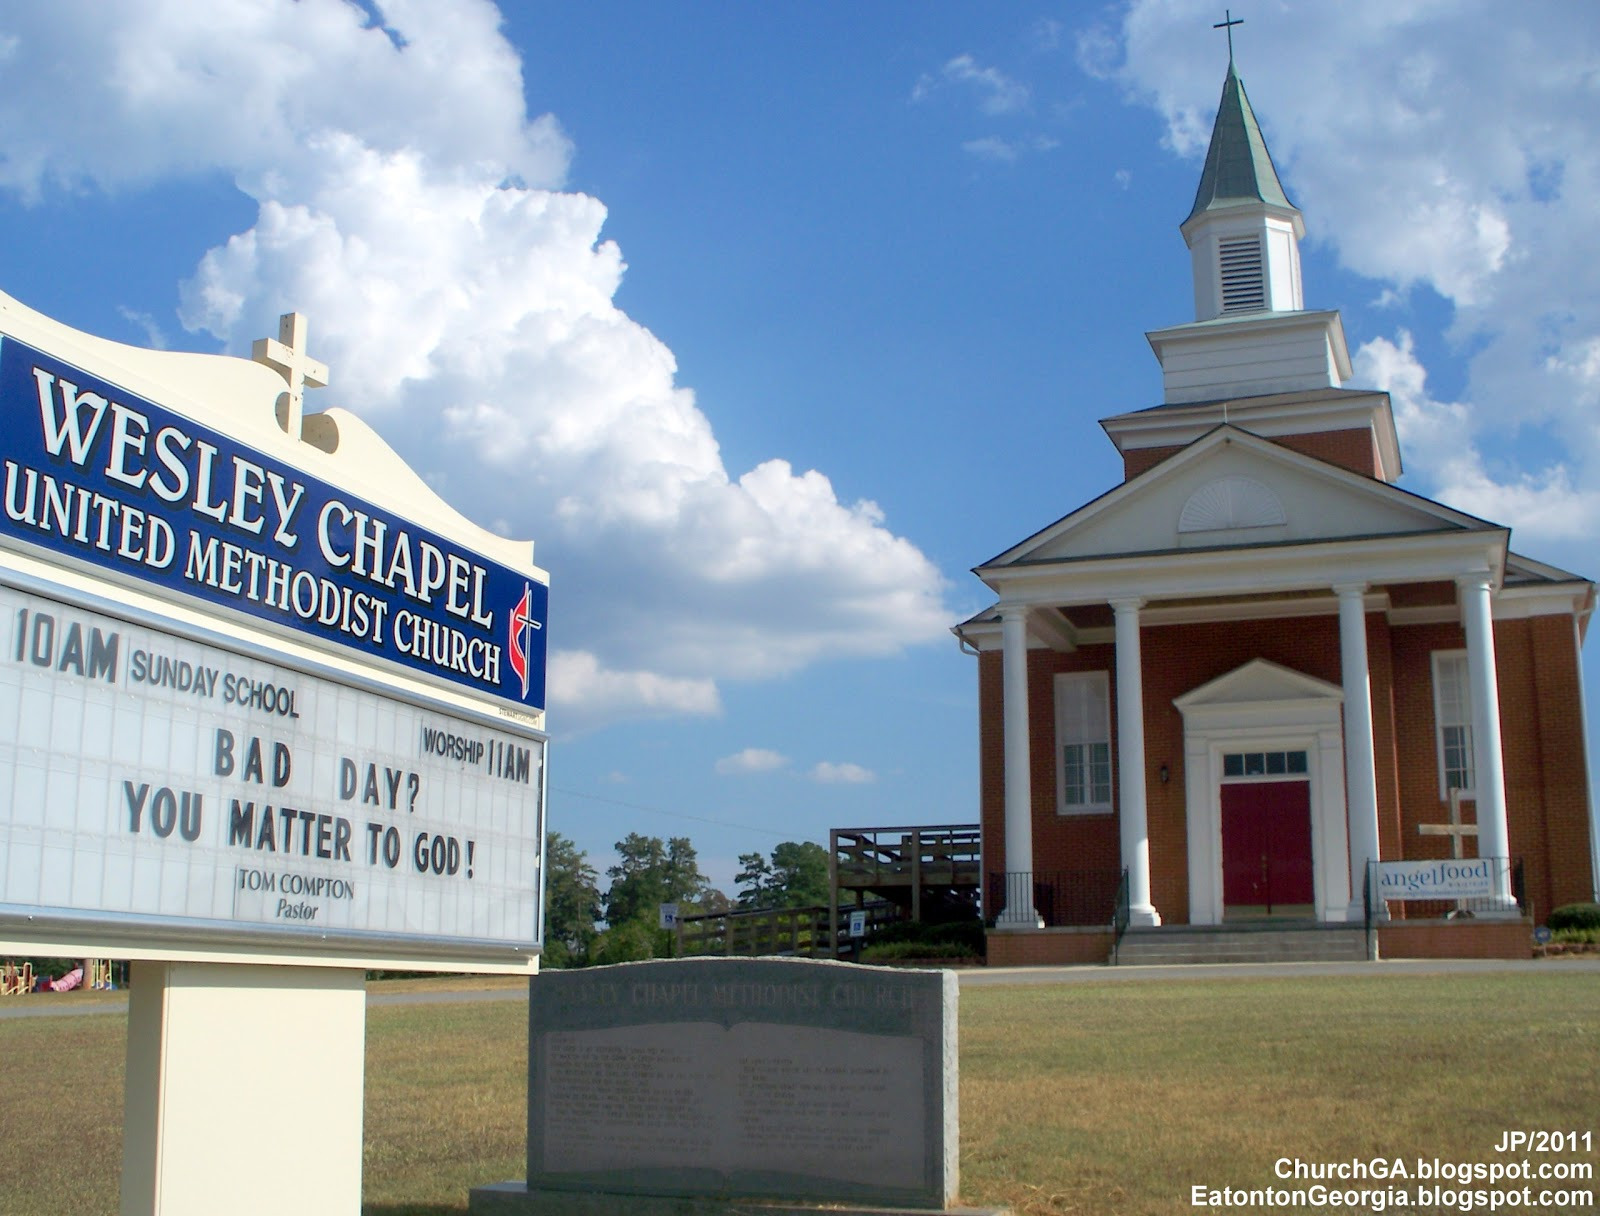 ... METHODIST CHURCH, WESLEY CHAPEL United Methodist Church Eatonton